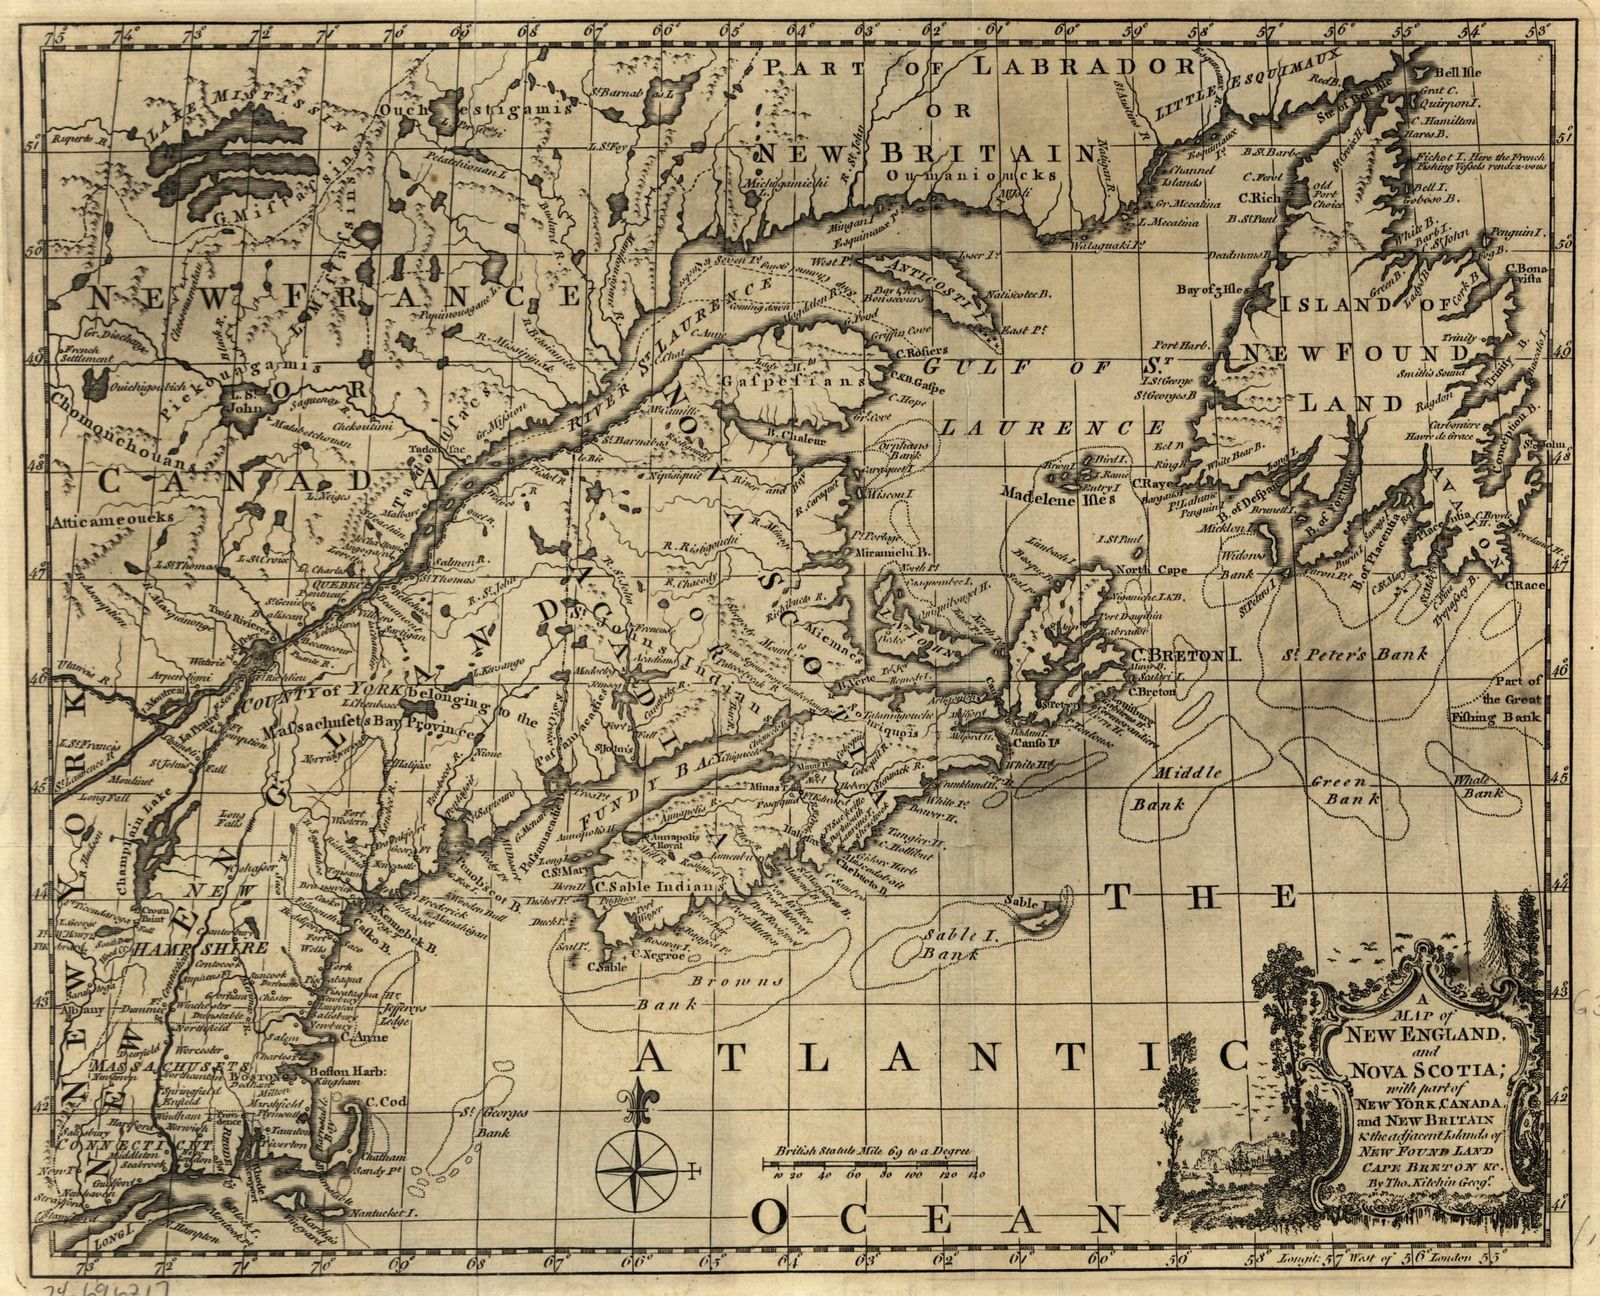 Map Of Nw England.A Map Of New England And Nova Scotia With Part Of New York Canada